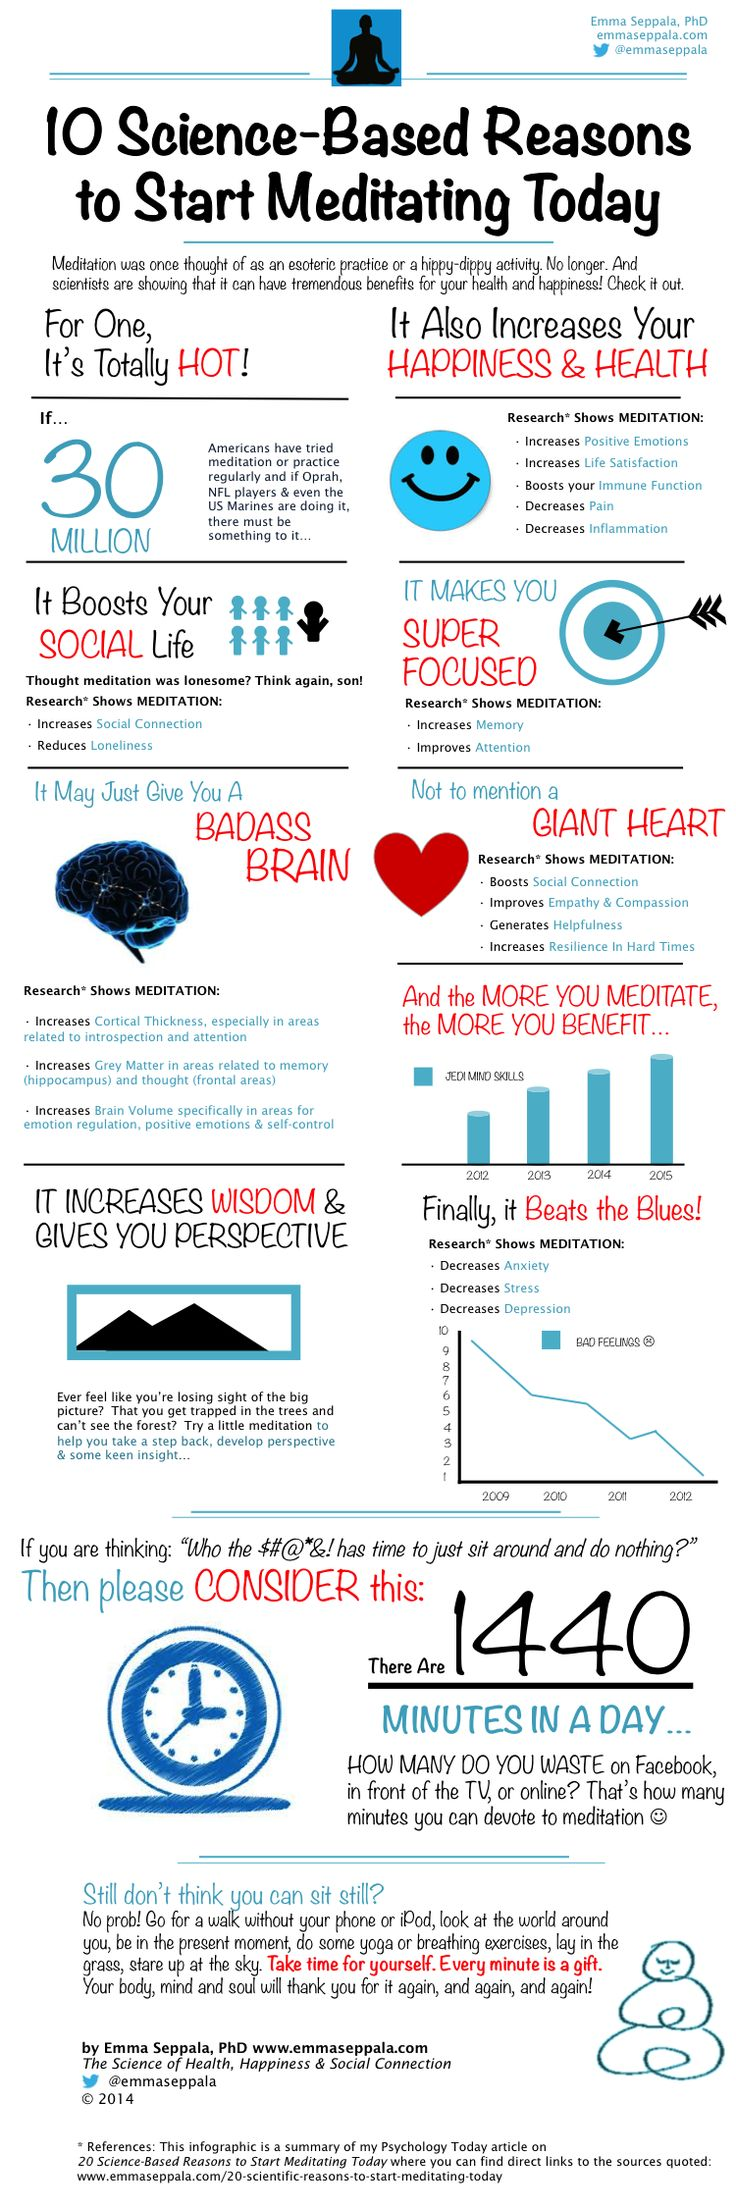 10 Scientifically Proven Health Benefits of Meditation [Infographic] | Hidden | Pinterest | Meditation benefits, Meditation and Mindfulness